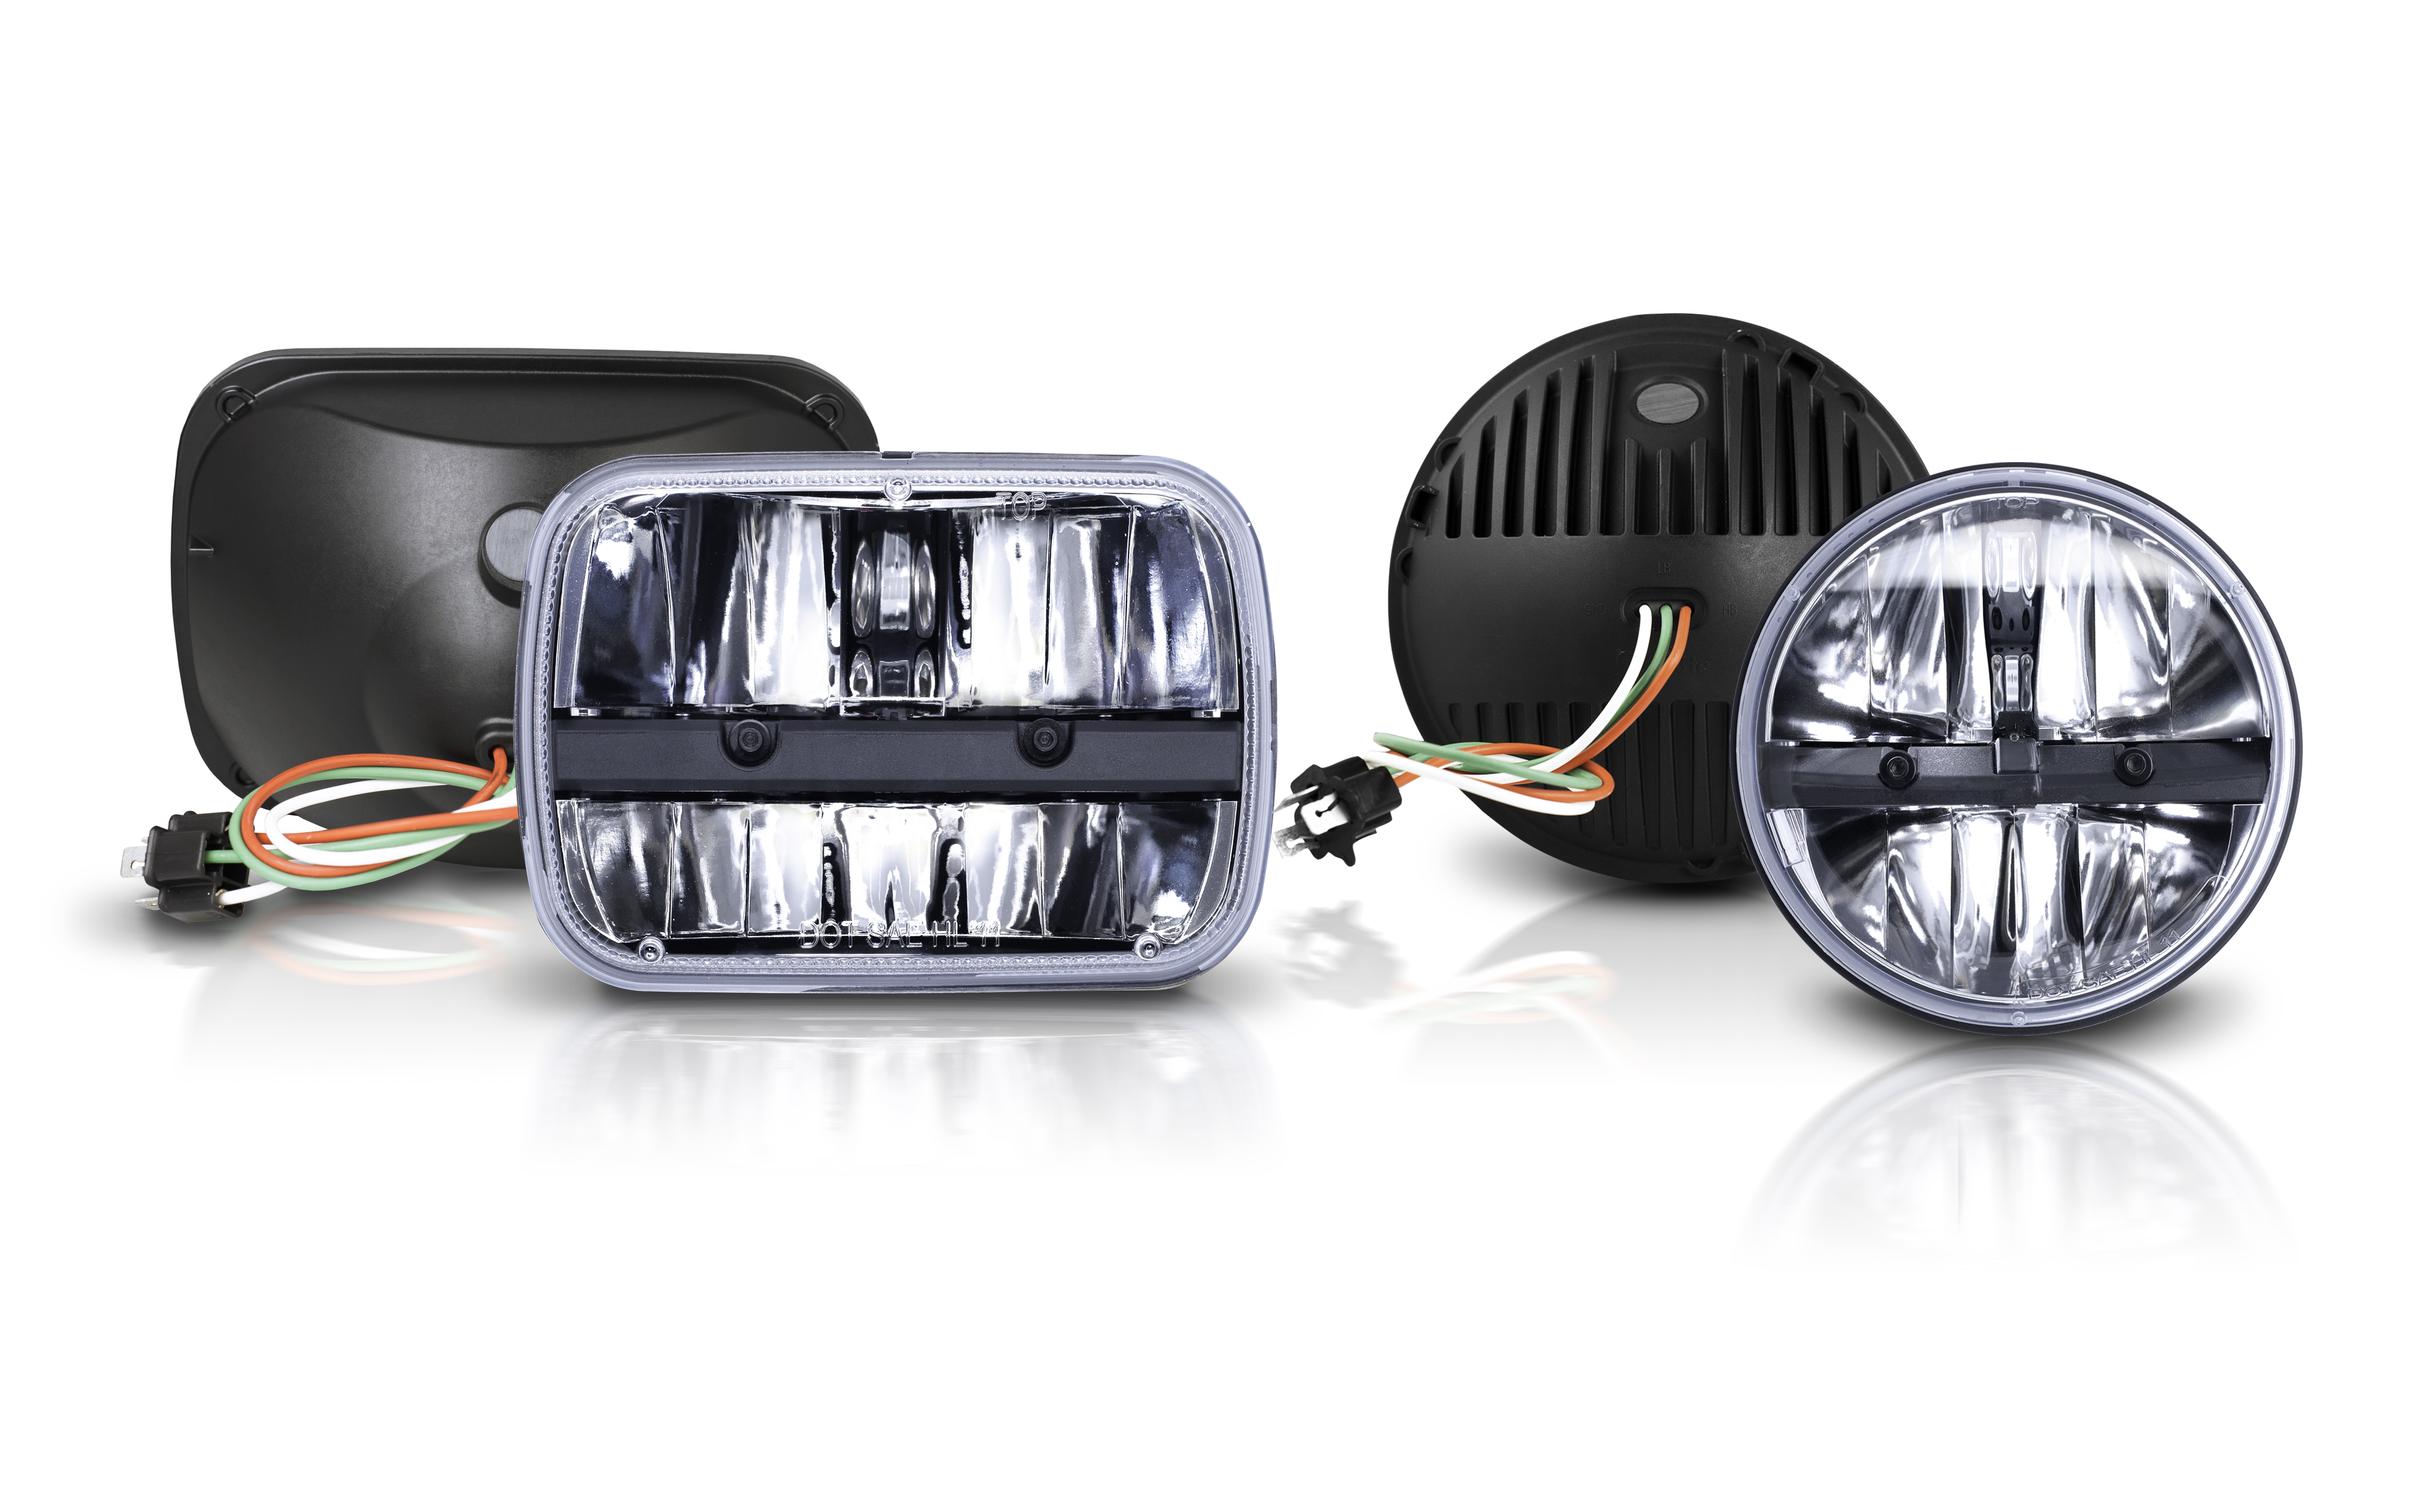 Advanced tech in replacement Philips headlamps